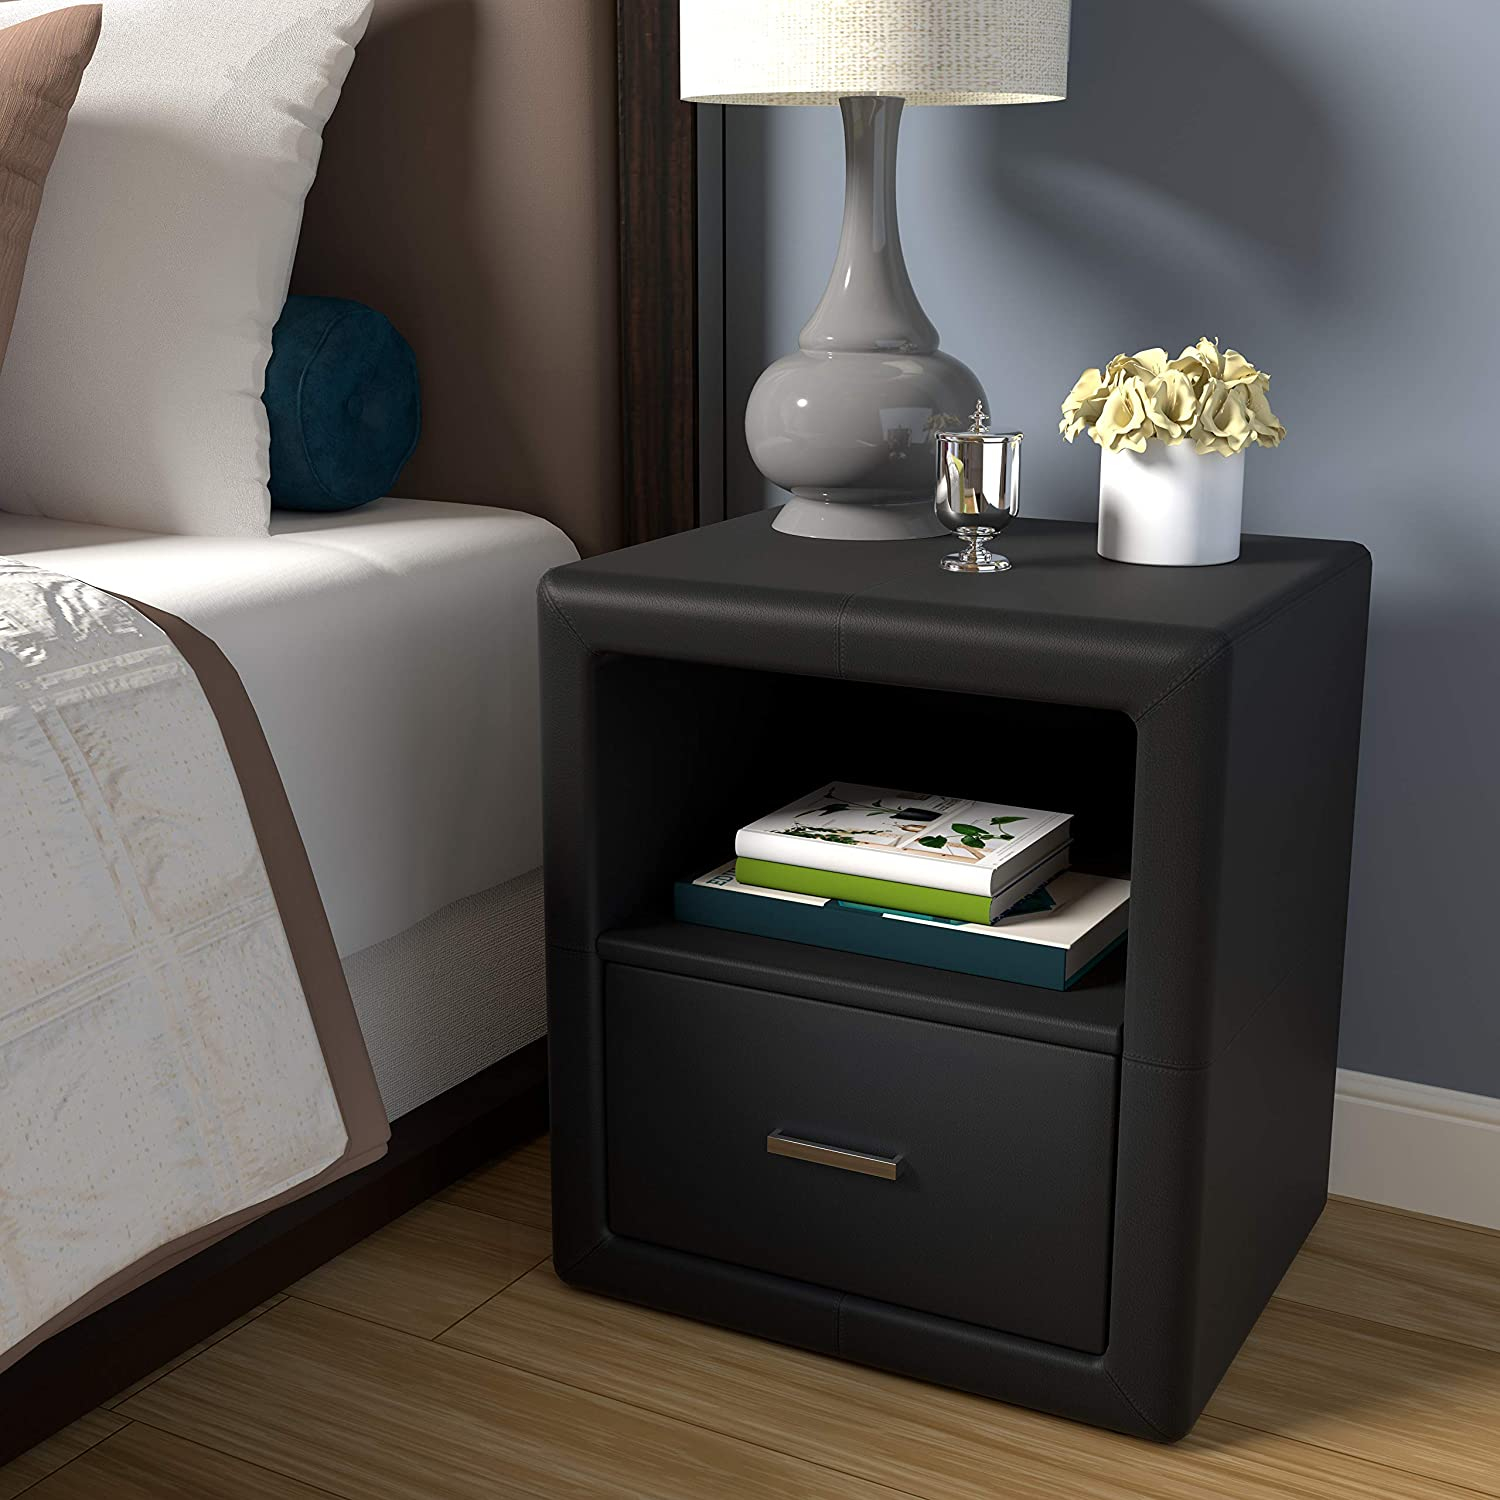 Boyd Sleep Contemporary Bedroom Furniture: Lombardi Upholstered Nightstand with Single Drawer and Open Shelf, Faux Leather, Black